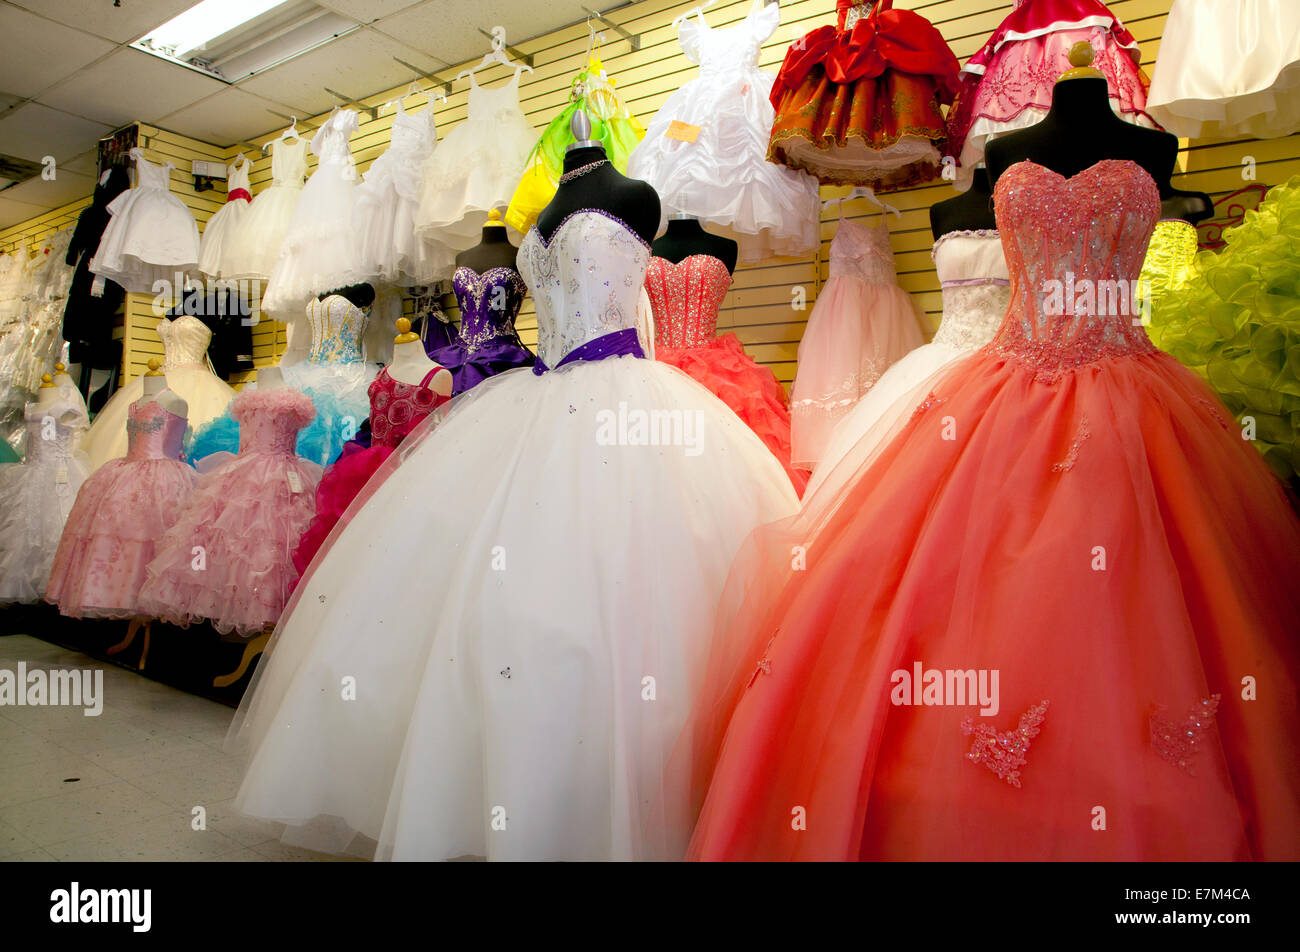 Wedding Store In Downtown Los Angeles Ca 2014 Stock Photo